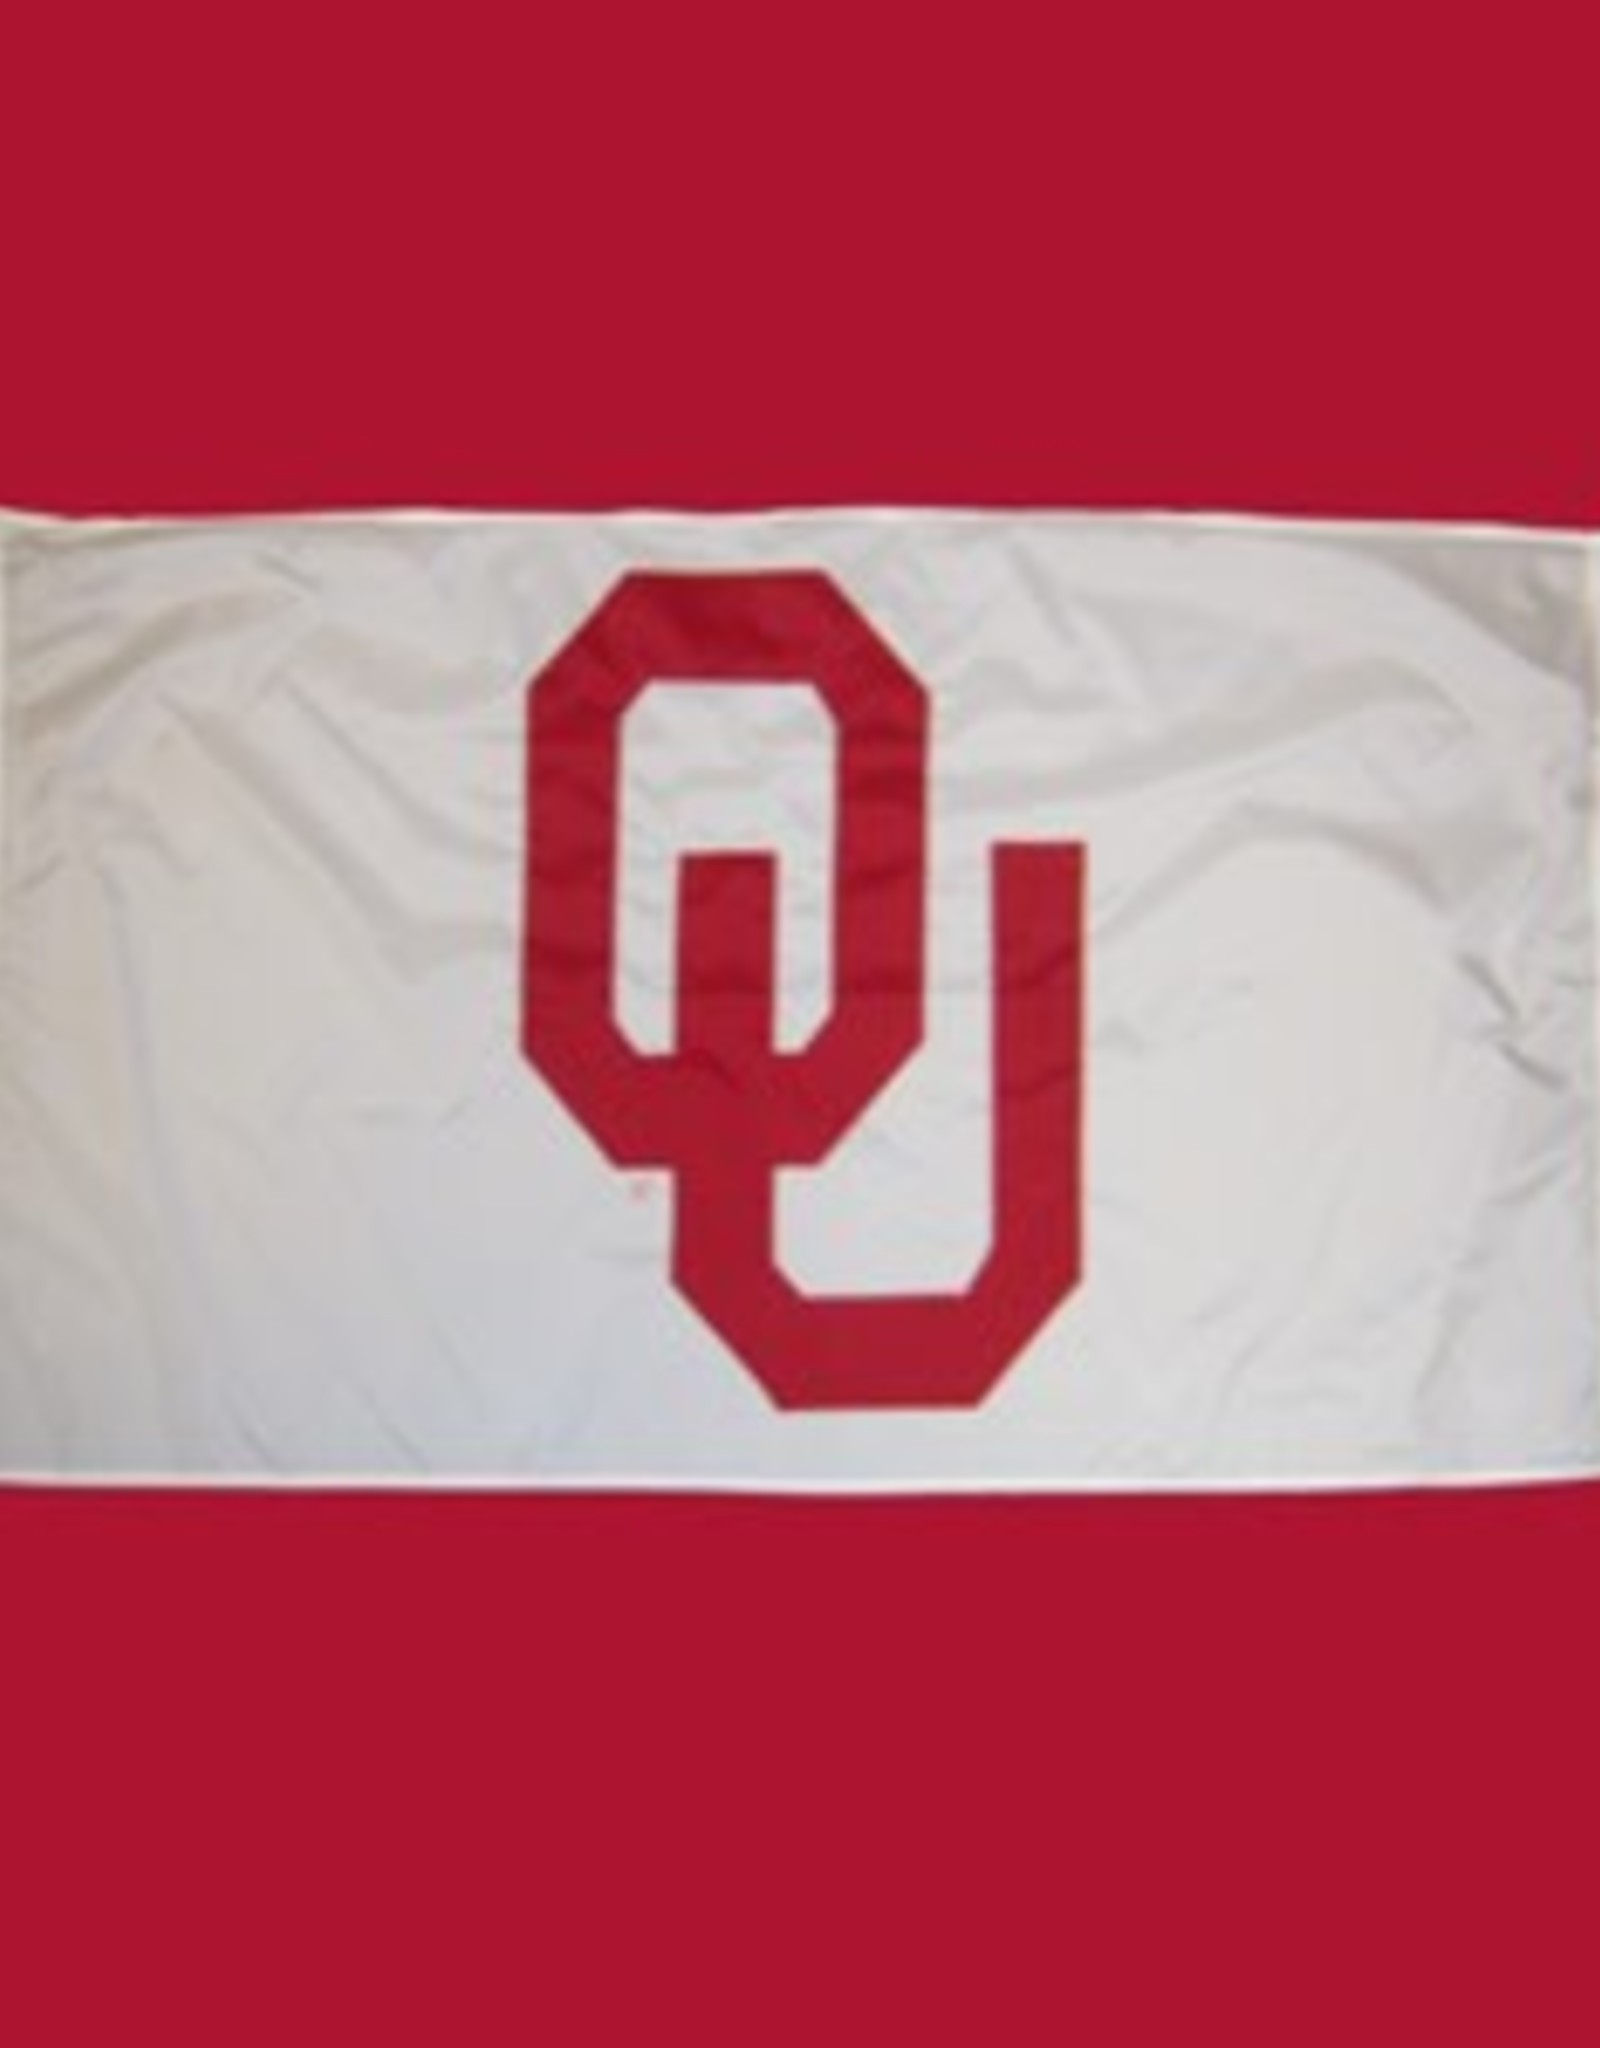 Sewing Concepts OU White 3'x5' Applique Flag (D)